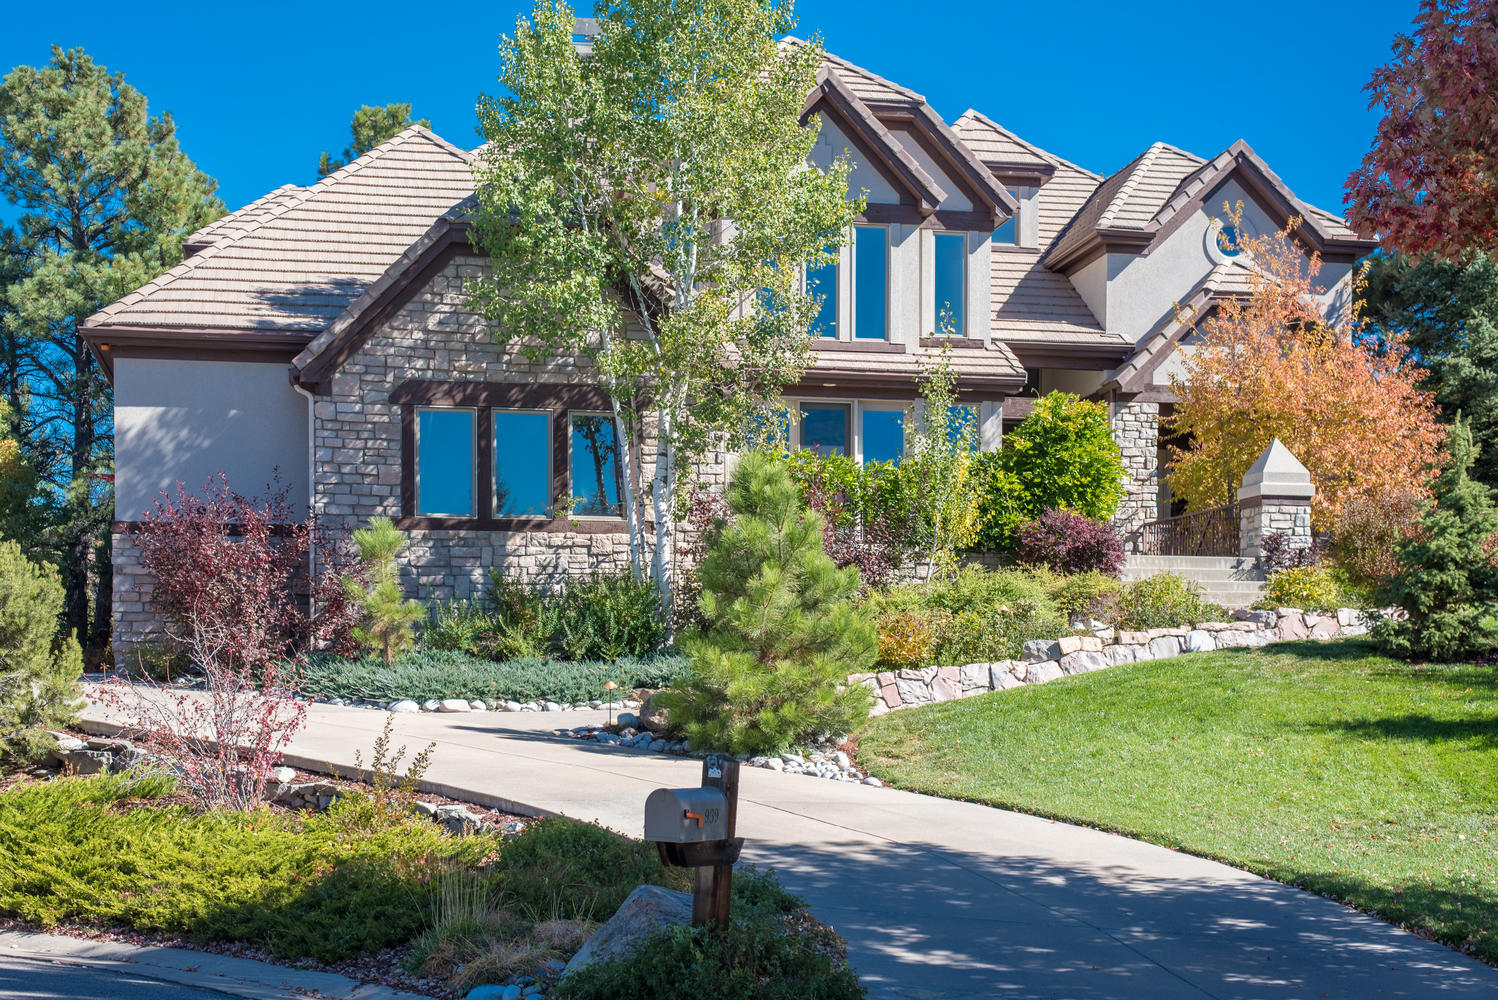 Single Family Home for Sale at Castle Pines Village 939 Aztec Dr Castle Rock, Colorado, 80108 United States